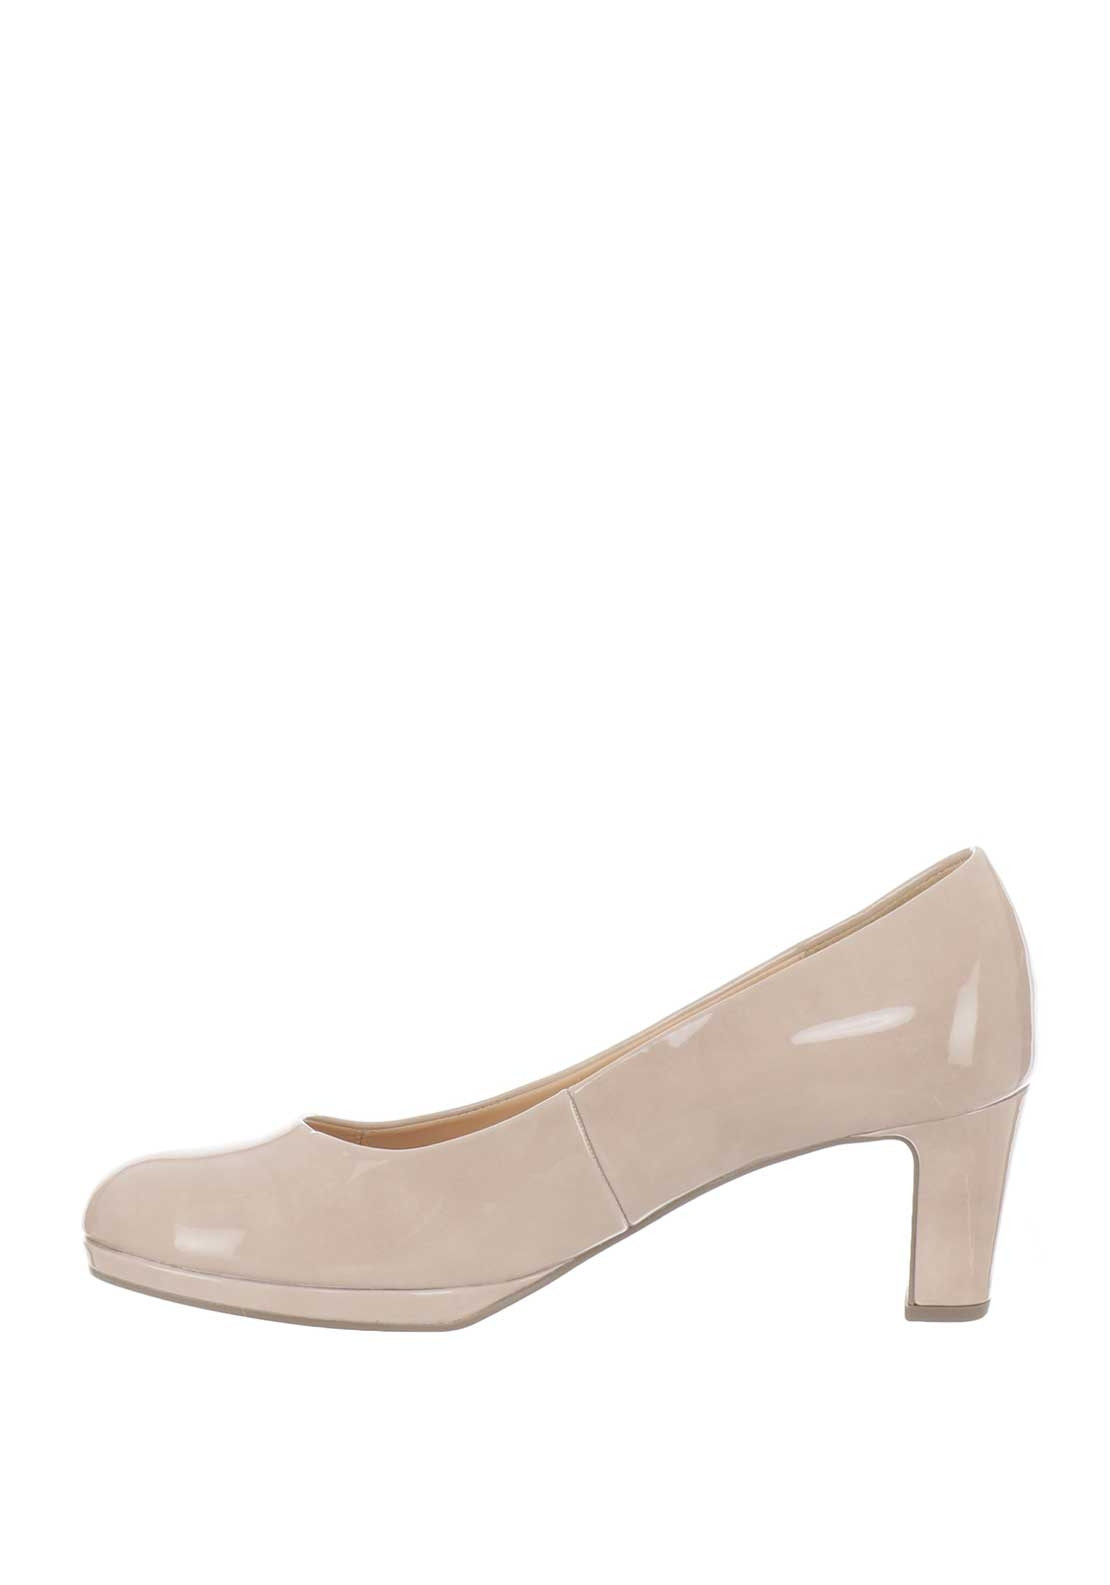 Gabor Soft Leather Nude Court Shoe